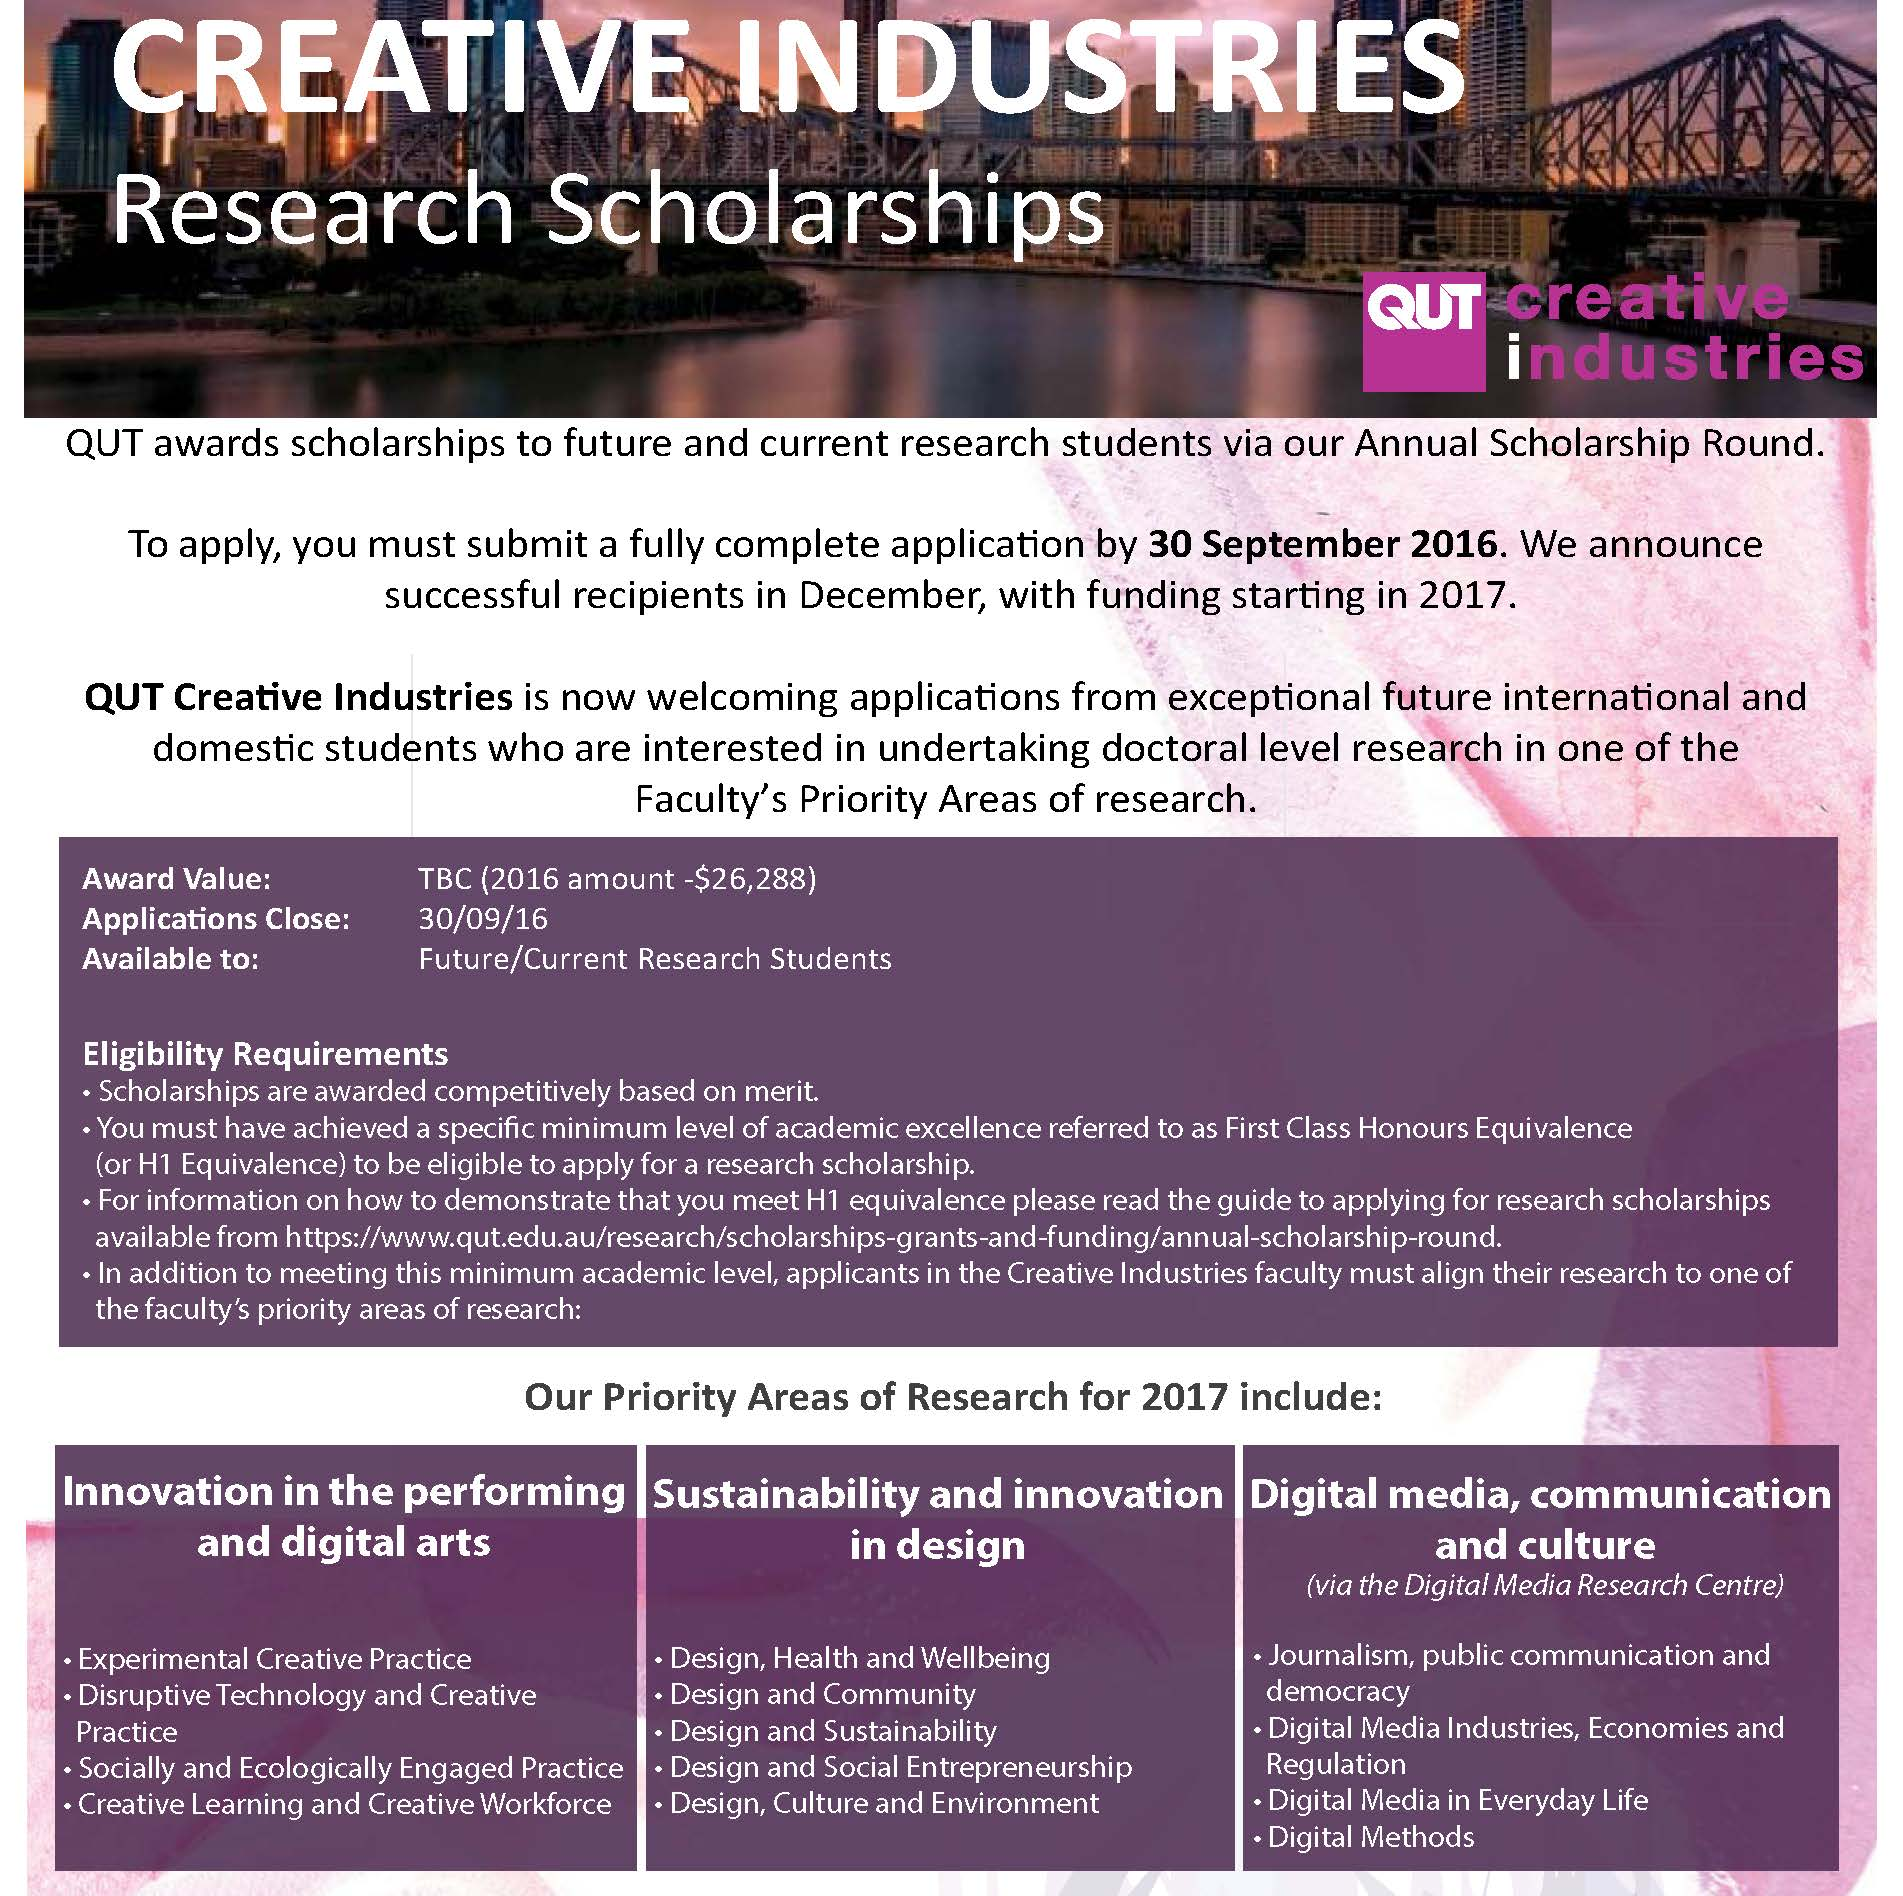 creative industries essay A culture of creativity: design education and the creative industries billy matheson centre for creative industries, wellington institute of technology, wellington, new zealand abstract purpose – the purpose of this paper is to describe the influence of the creative industries on design education in new zealand.